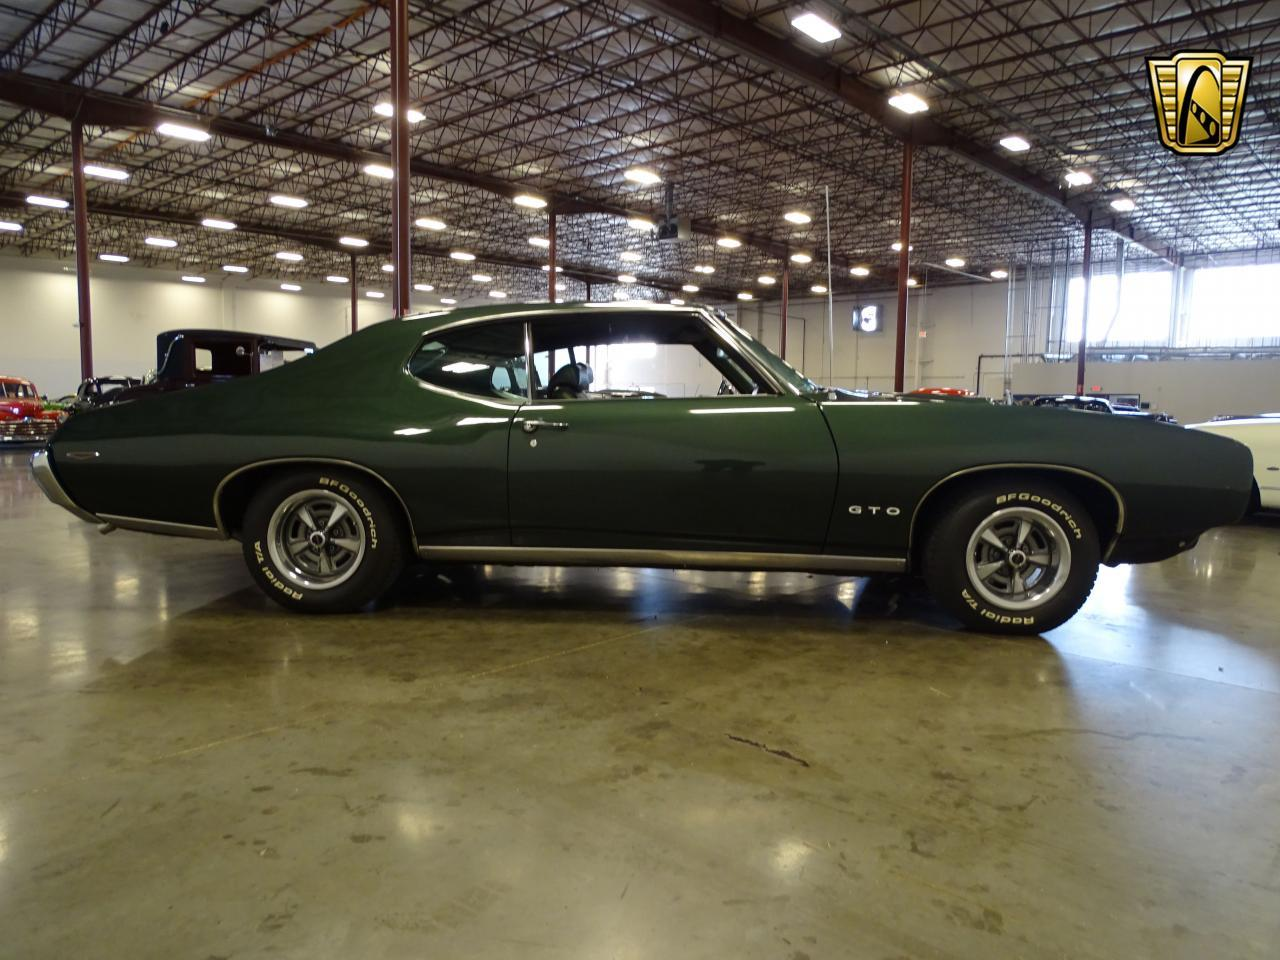 Large Picture of '69 GTO located in La Vergne Tennessee - $31,995.00 - OGZL